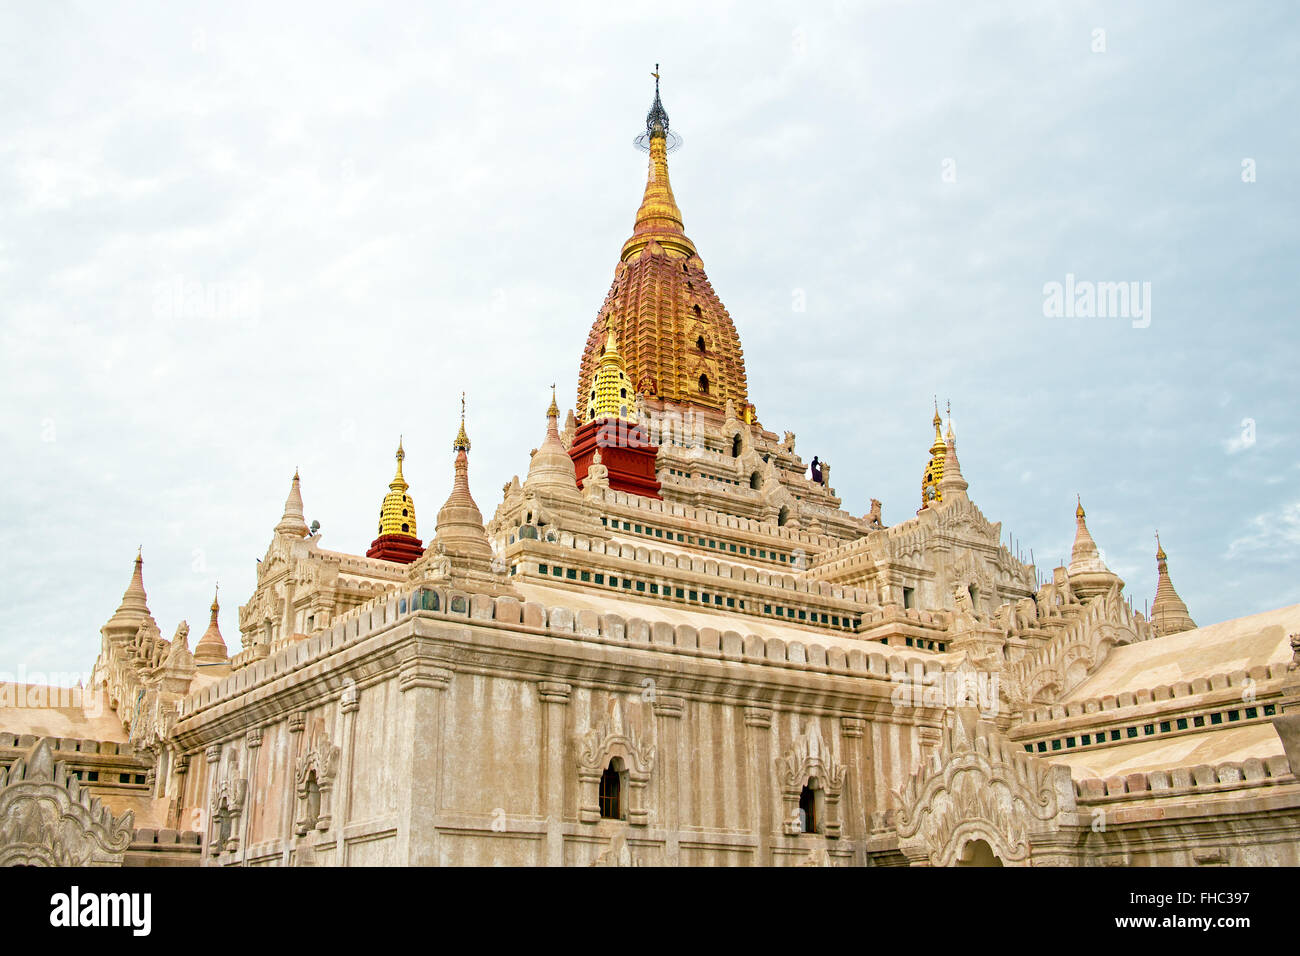 Ananda Temple in Bagan Myanmar - Stock Image